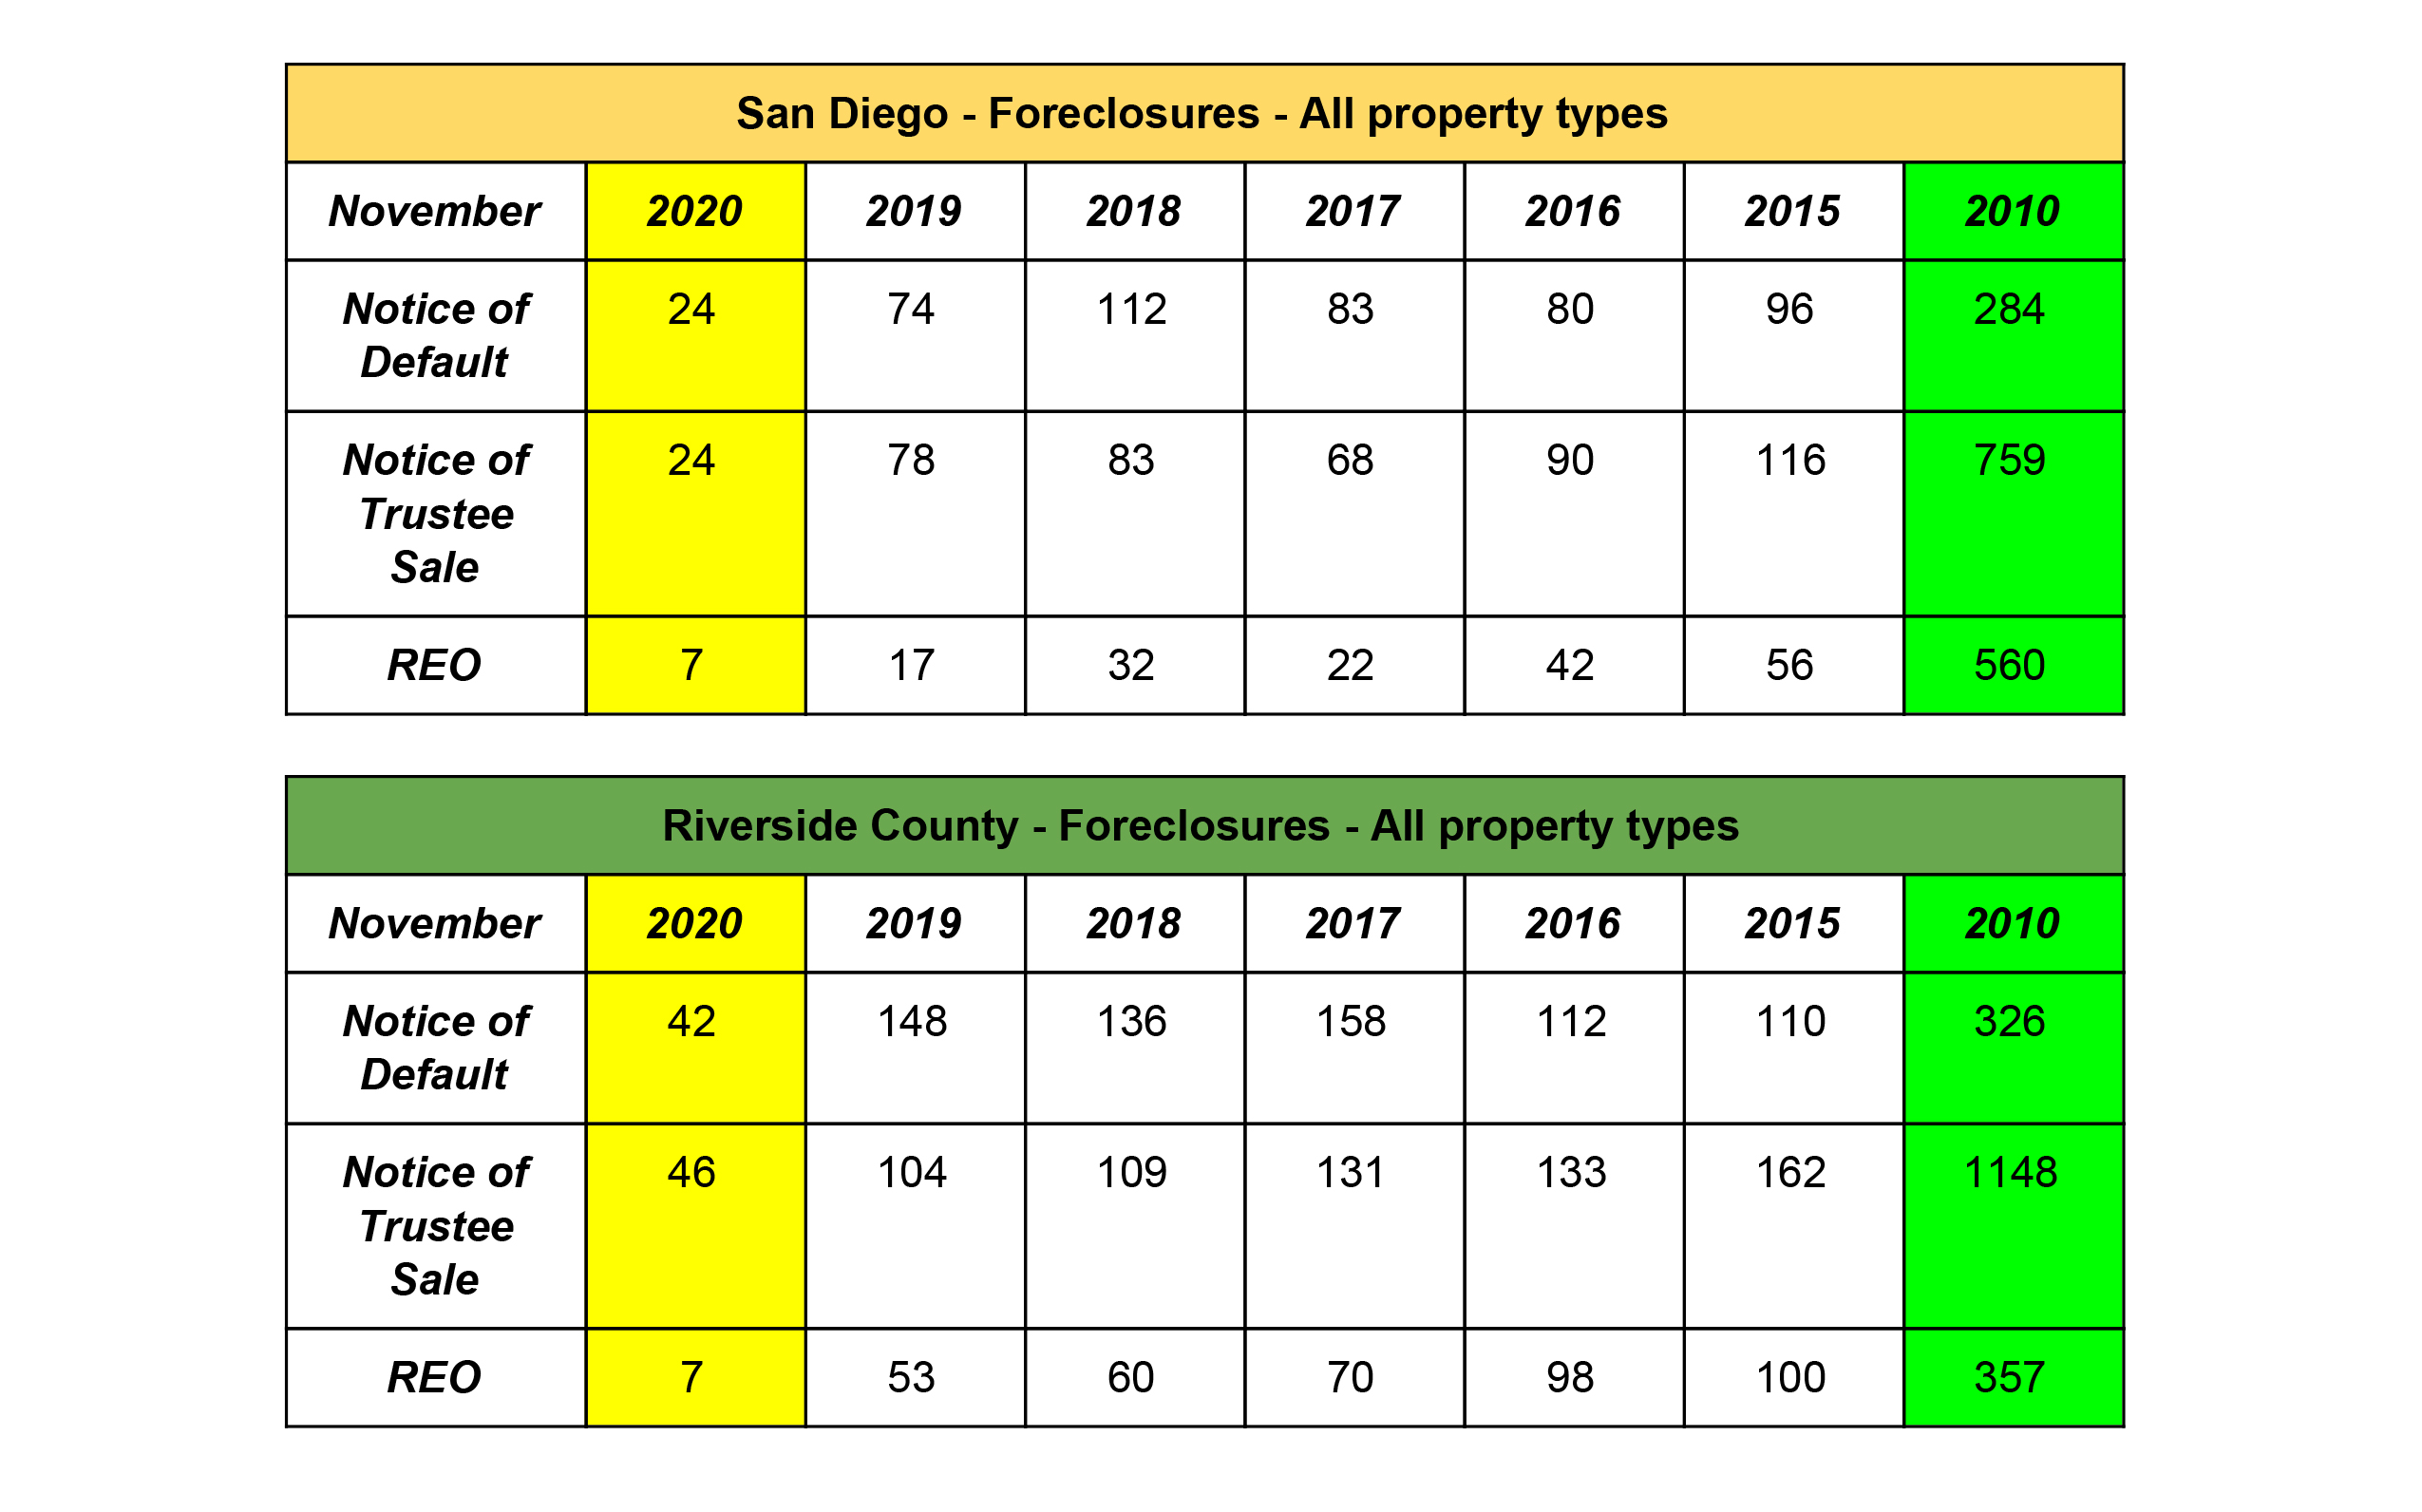 Foreclosures - SD & RIV